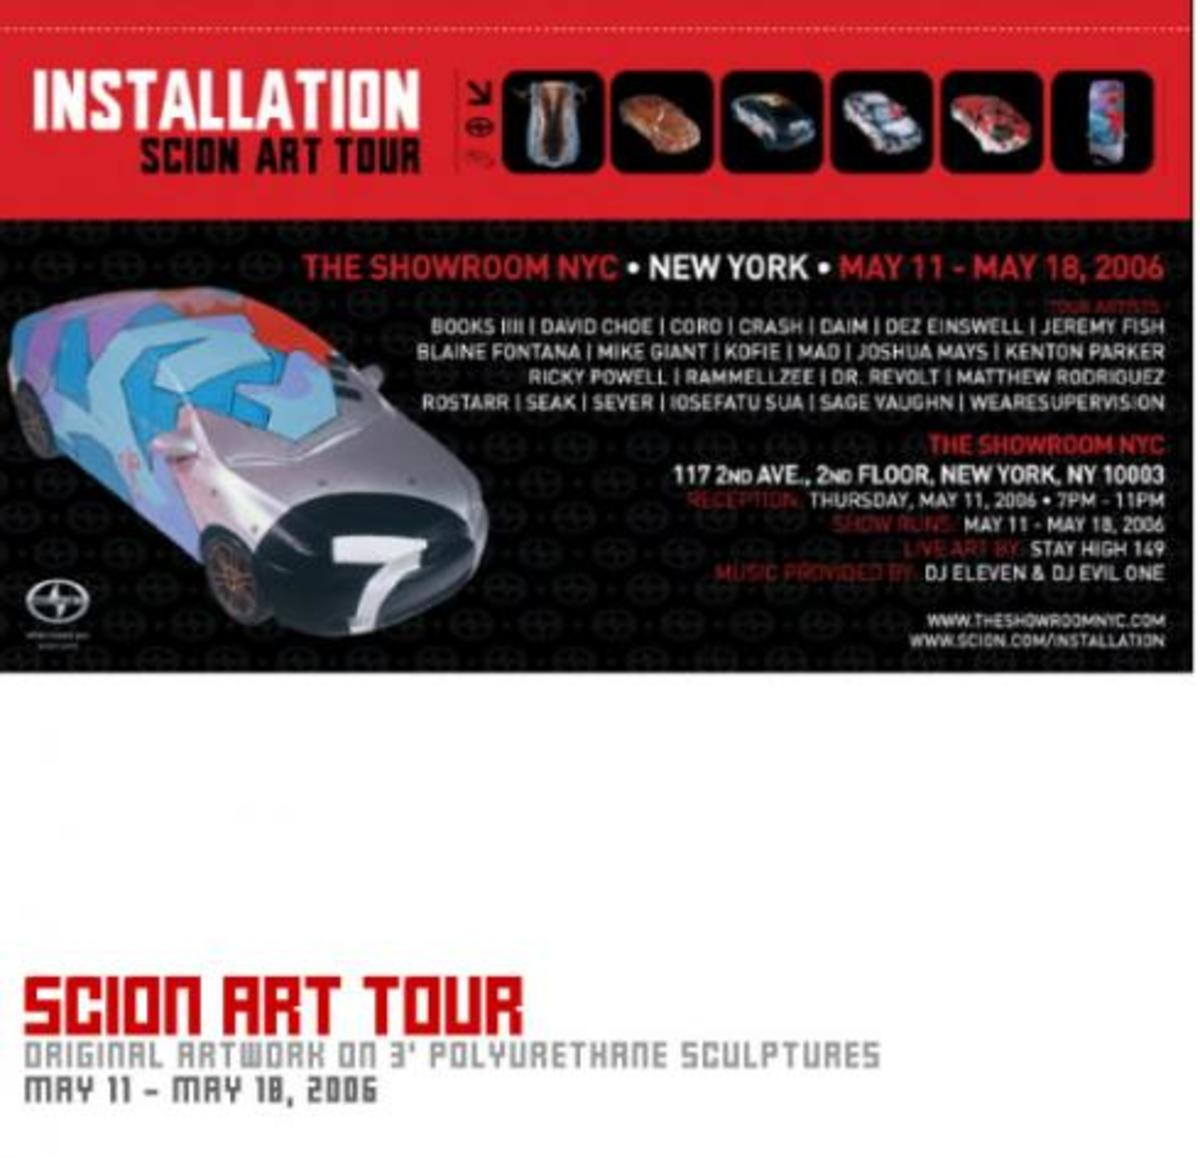 Scion Art Tour: Installation 3 @ The Showroom NYC - 1